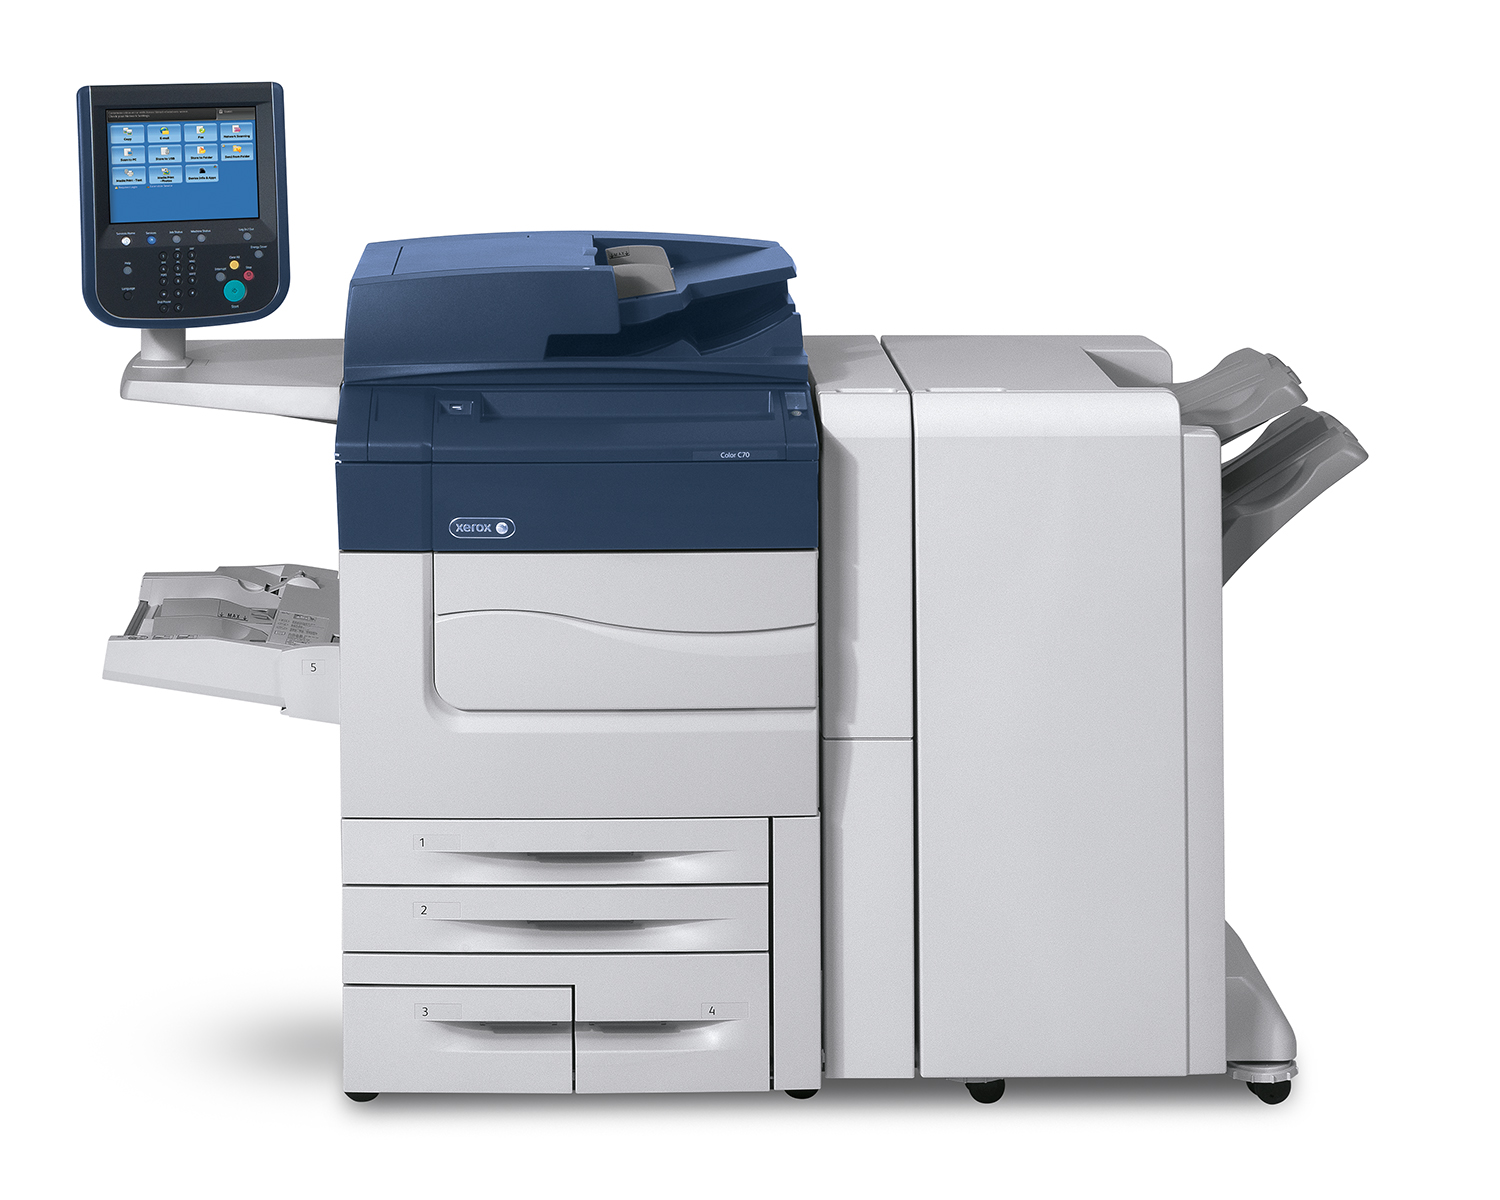 xerox 560 Copy Machine Leasing 26.71562 -80.11504